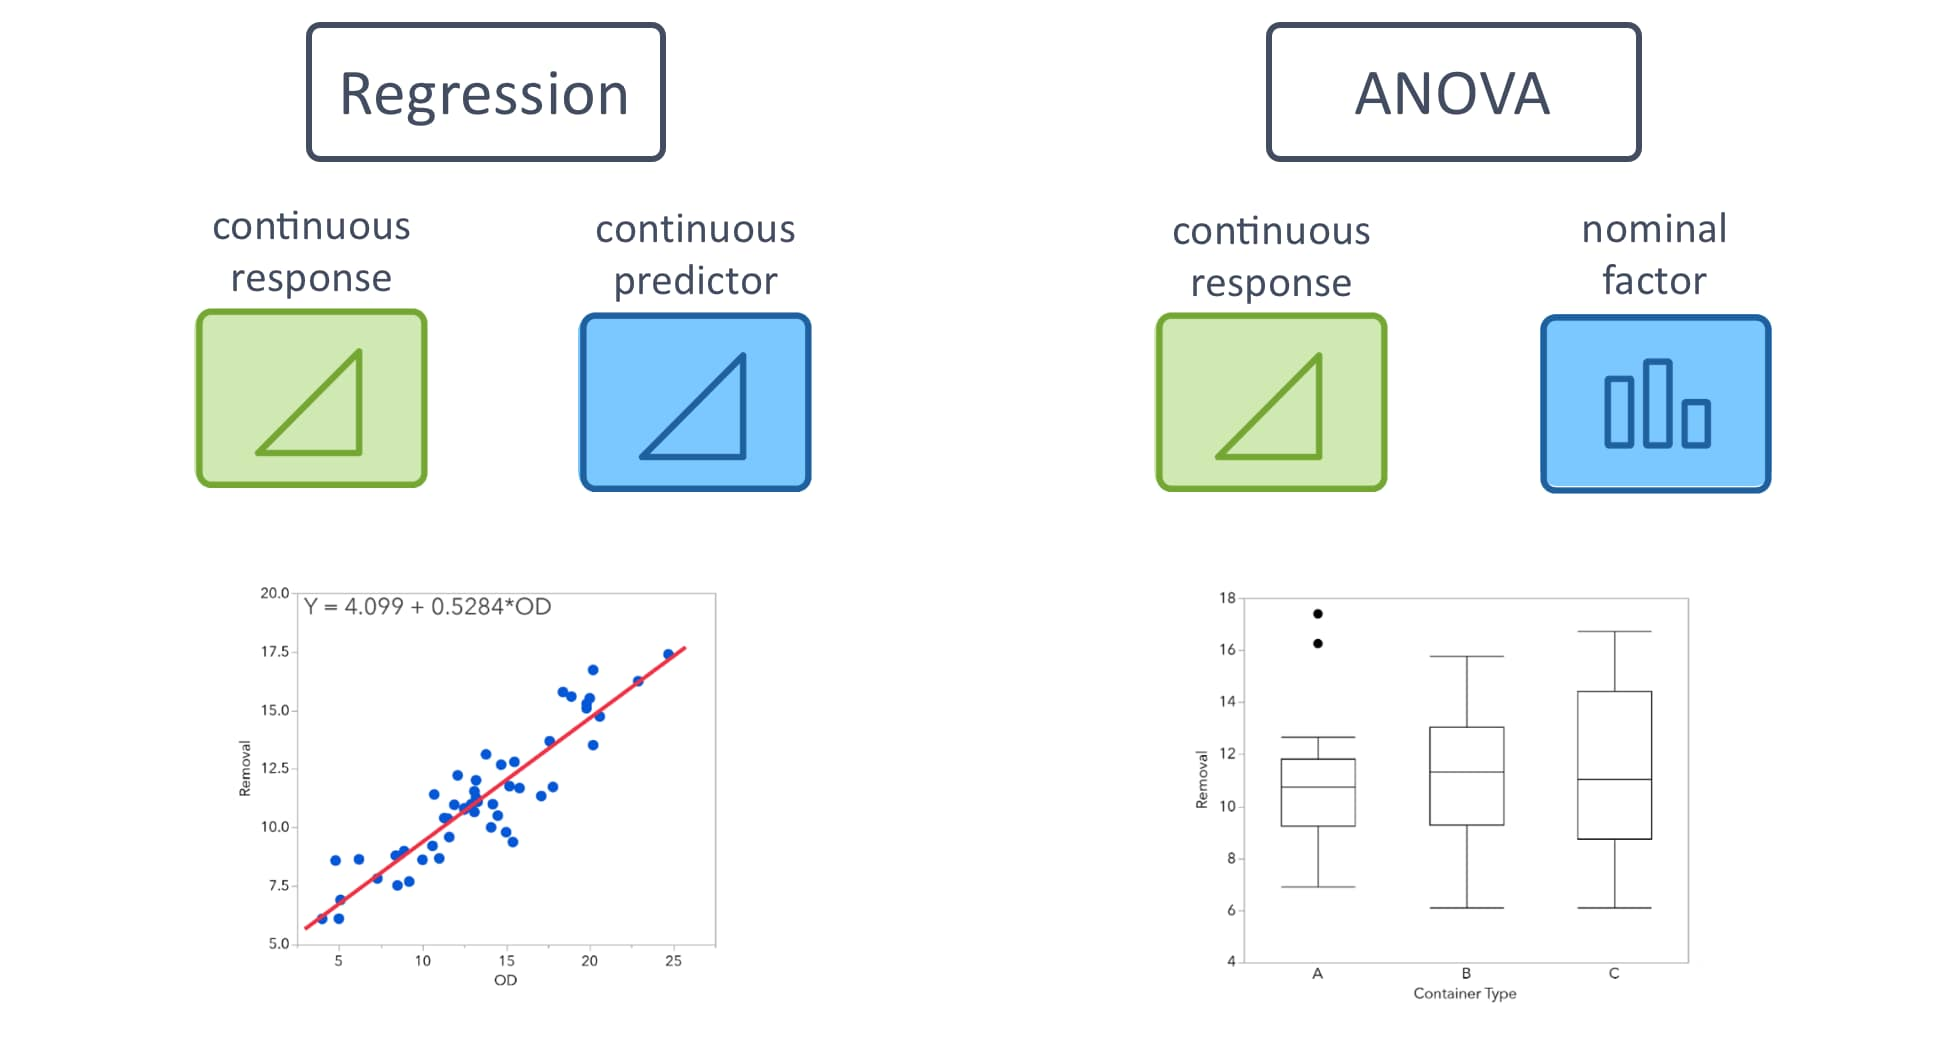 Simple Linear Regression vs ANOVA